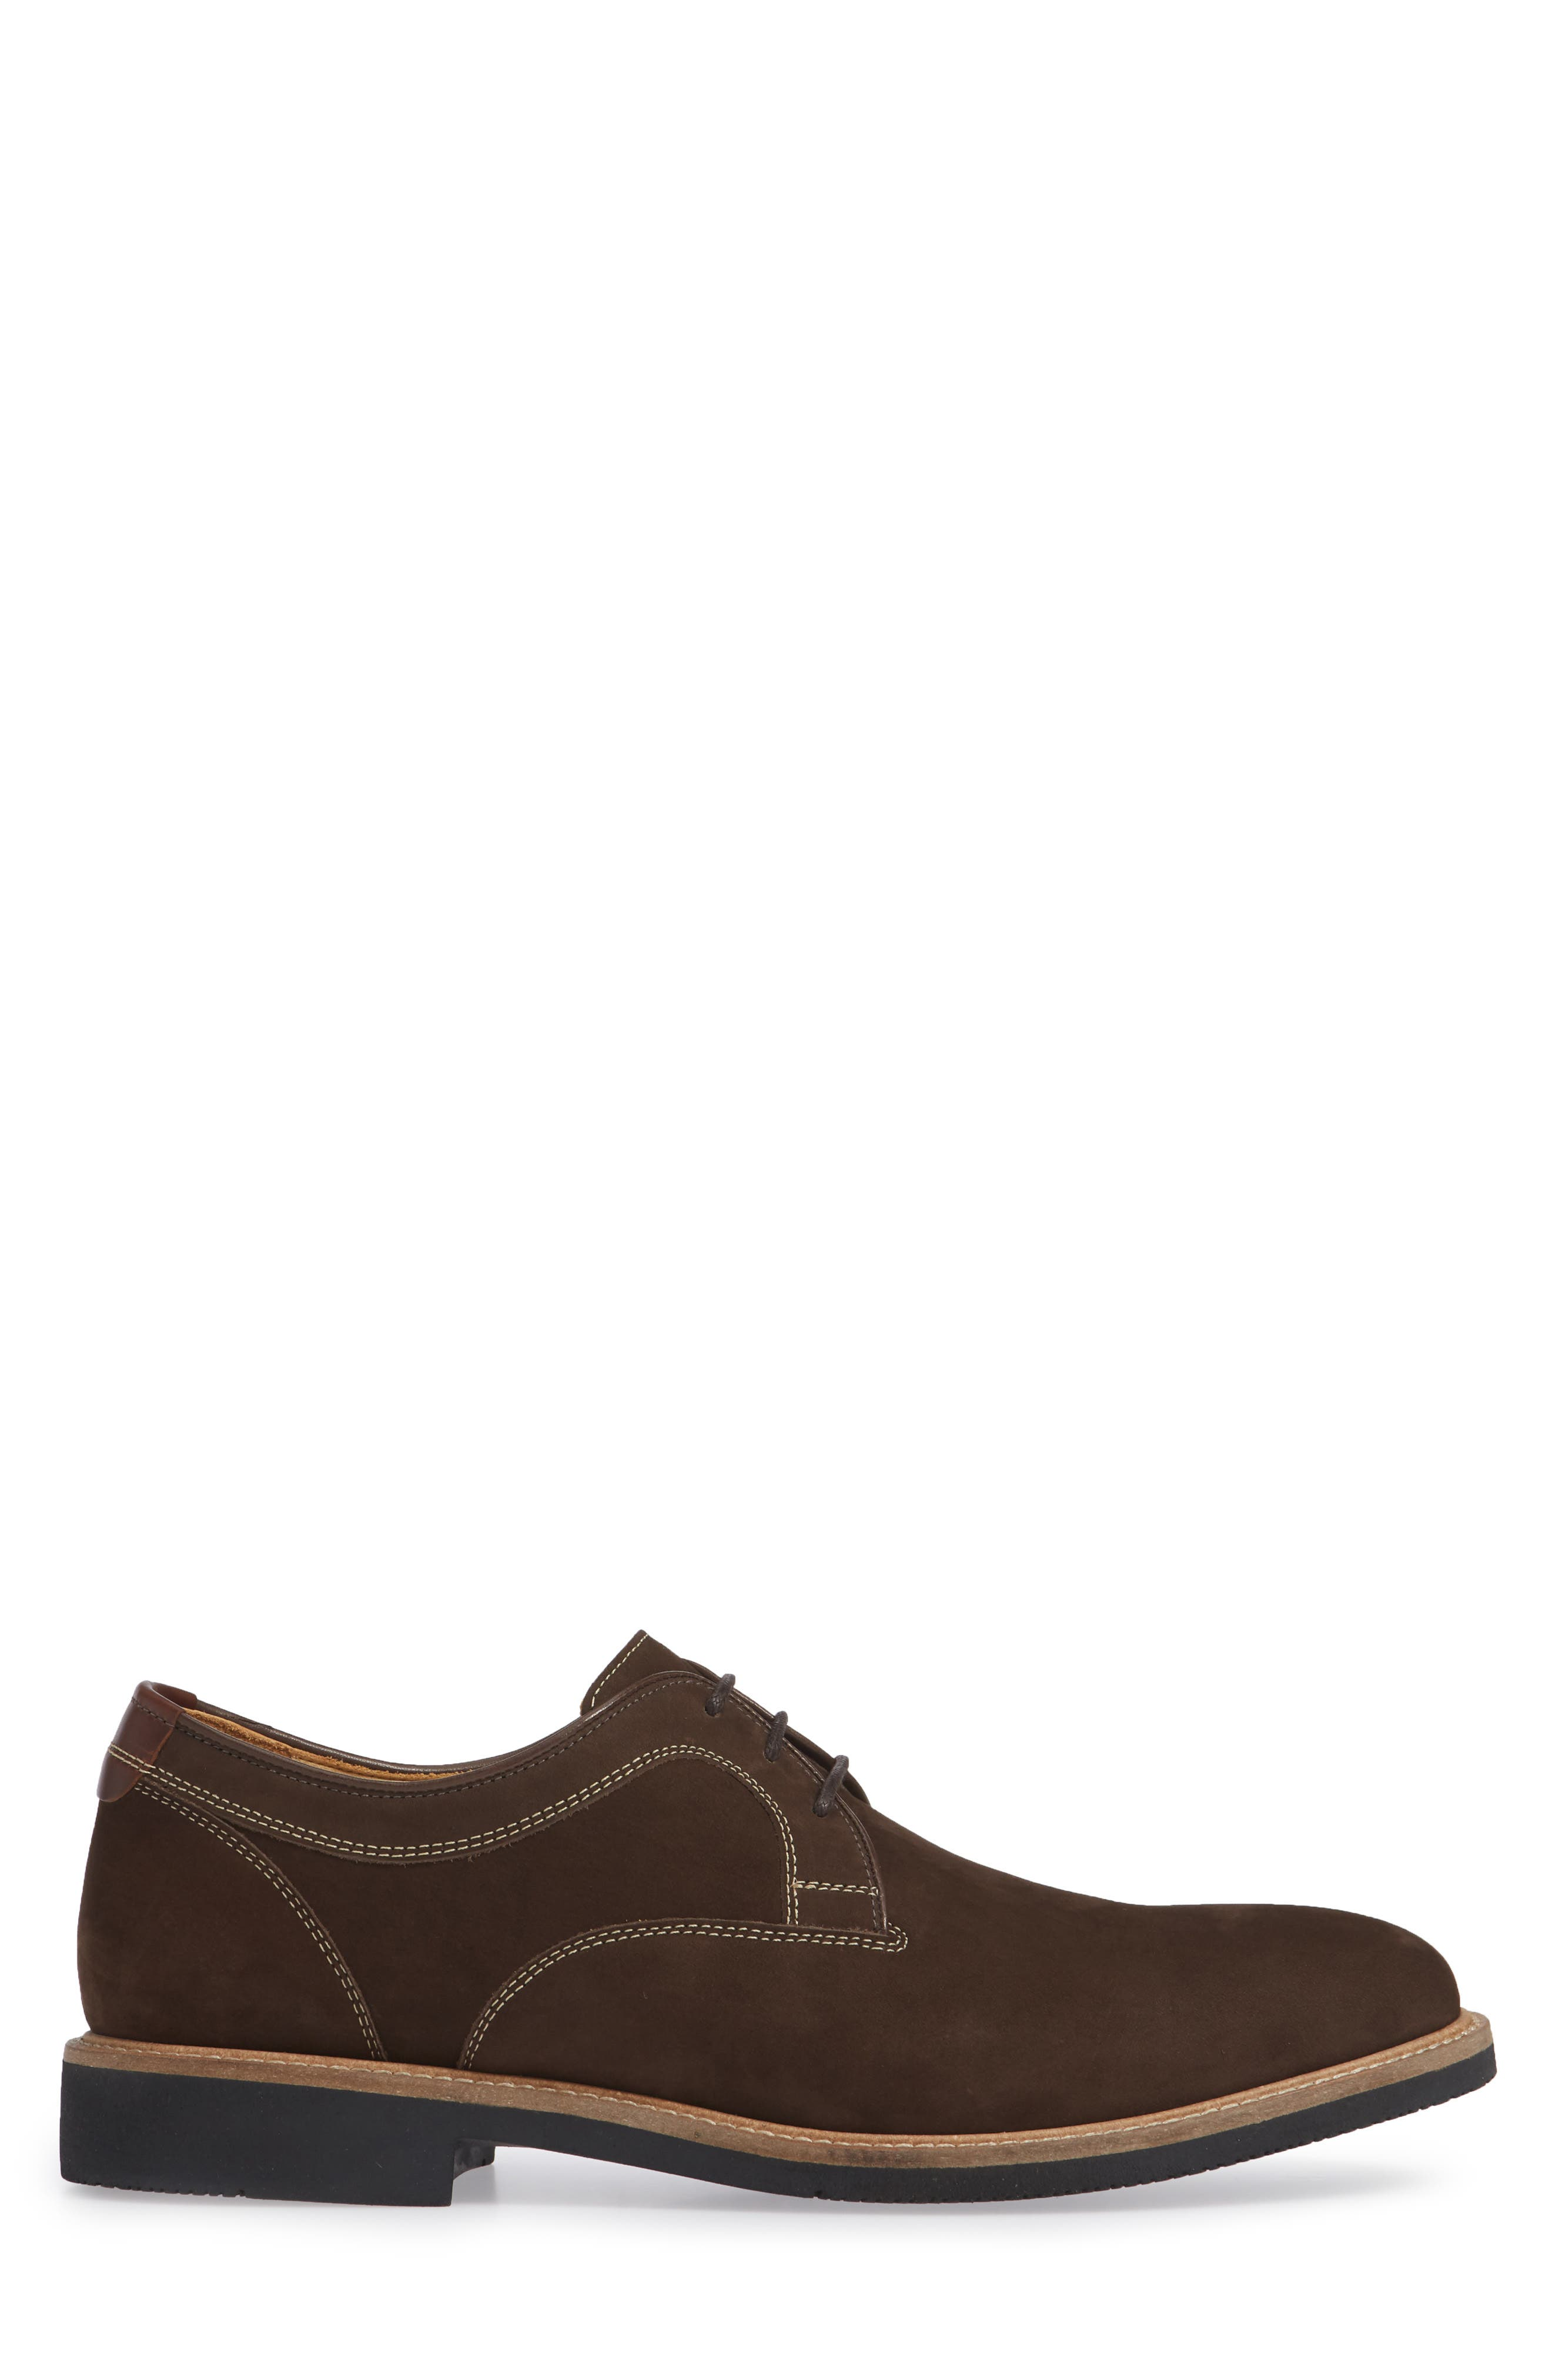 JOHNSTON & MURPHY,                             Barlow Plain Toe Derby,                             Alternate thumbnail 3, color,                             CHOCOLATE NUBUCK